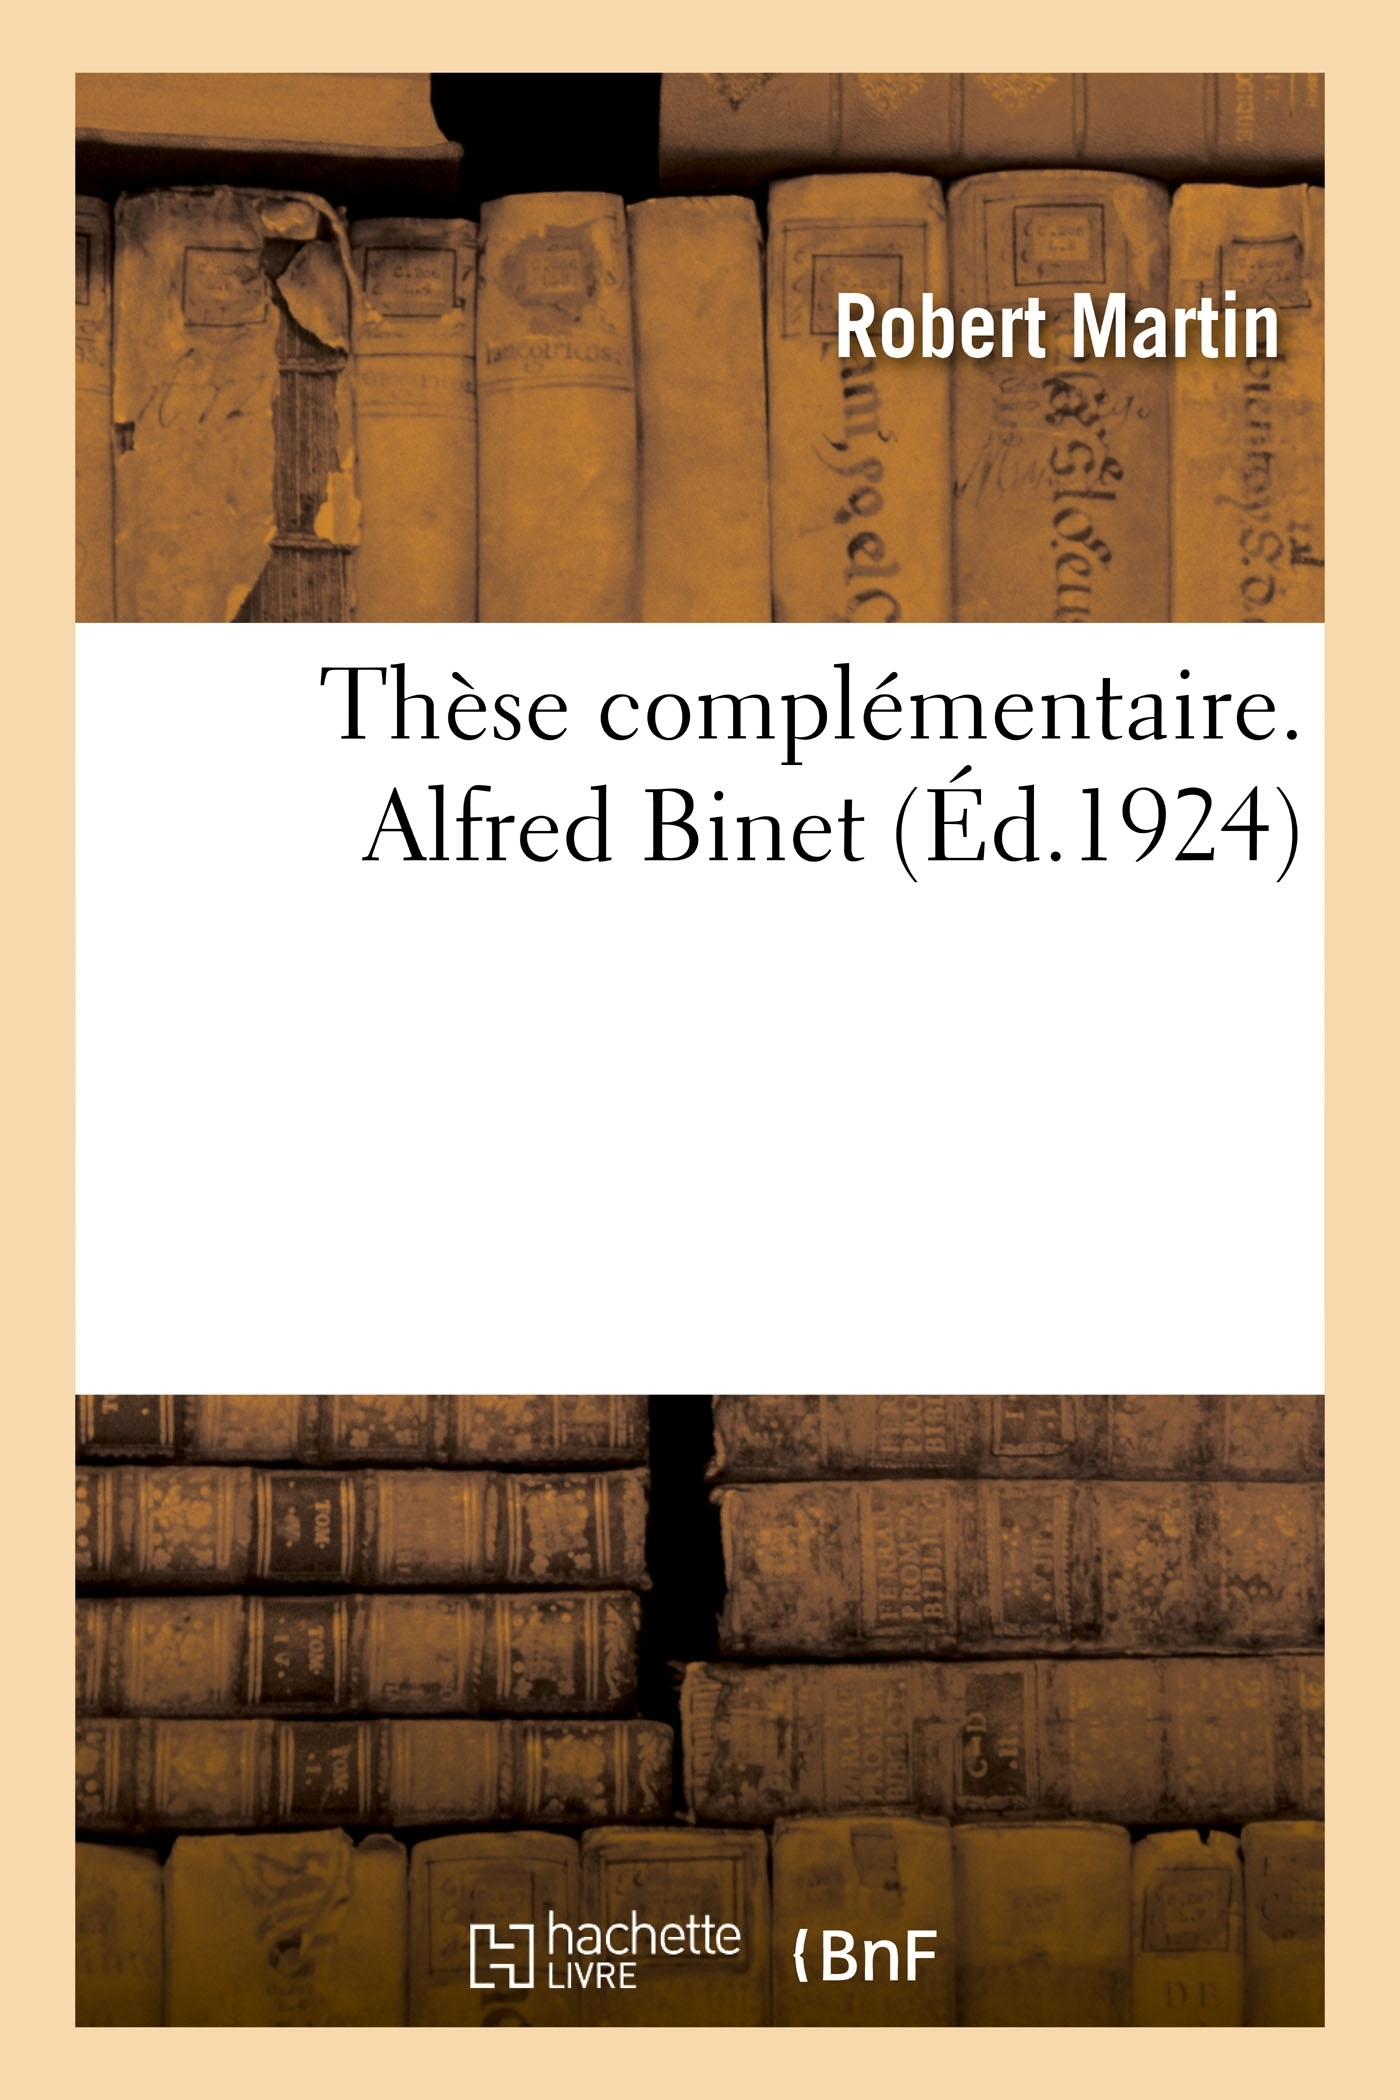 THESE COMPLEMENTAIRE. ALFRED BINET